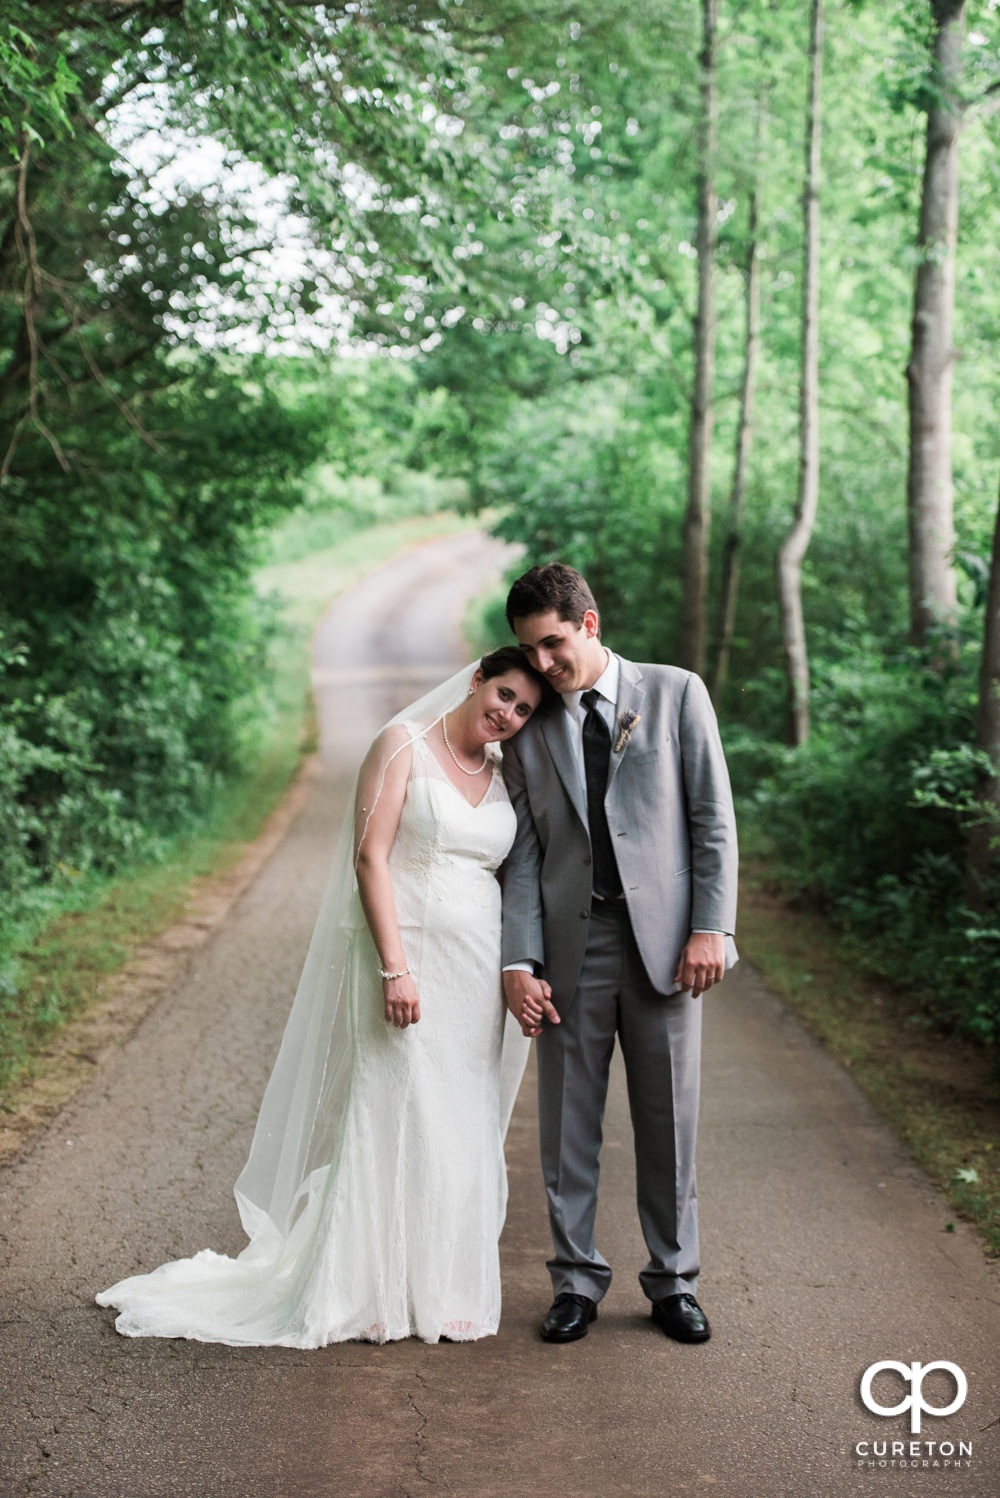 Bride and groom walking down the road at Greenbrier Farms.